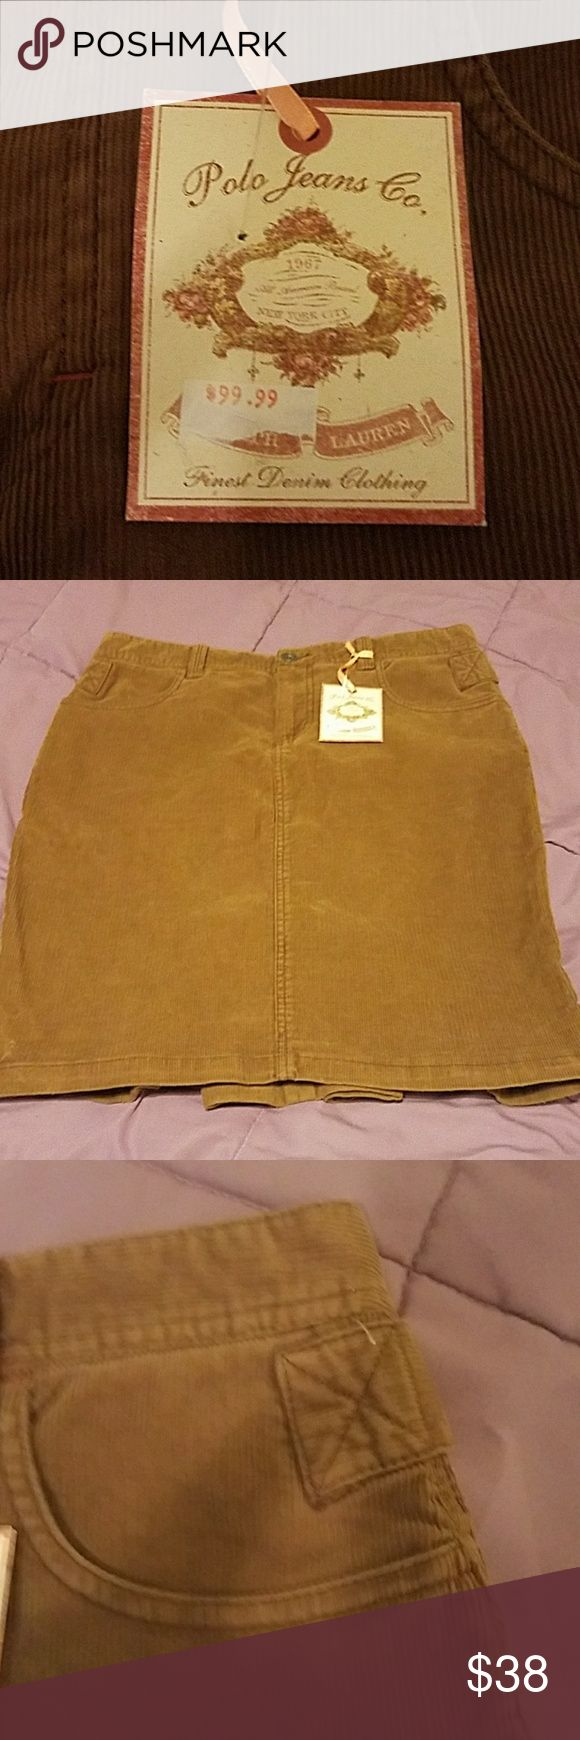 Corduroy NWT skirt by polo jeans Ralph Lauren NWT polo jeans company corduroy skirt. Medium brown extra pleats in the back for bending over. polo jeans company Skirts Pencil